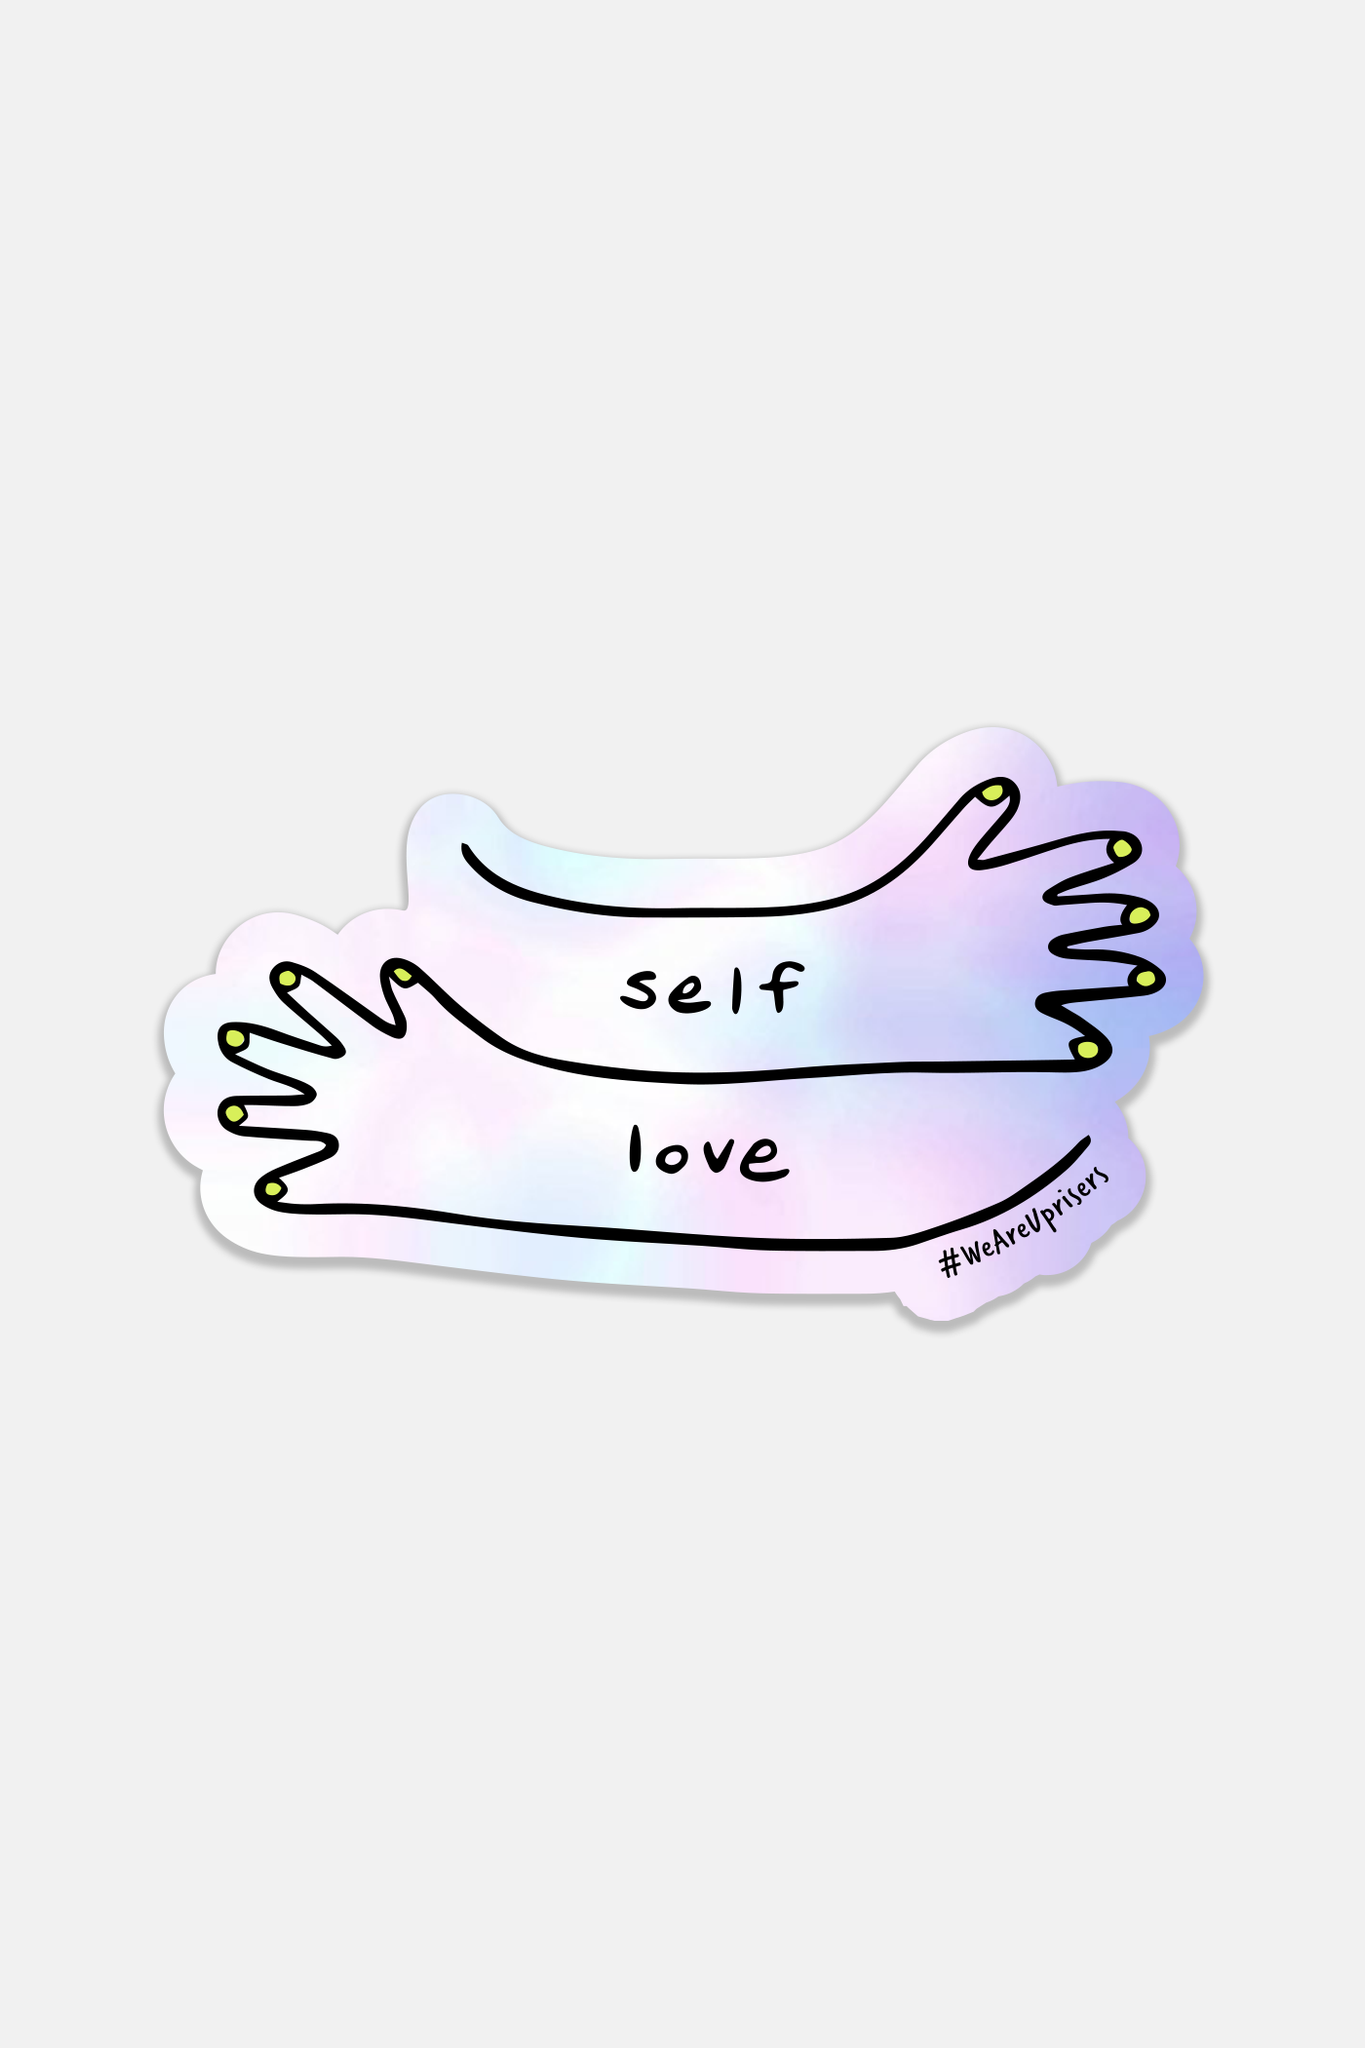 UPRISERS | Self Love Sticker